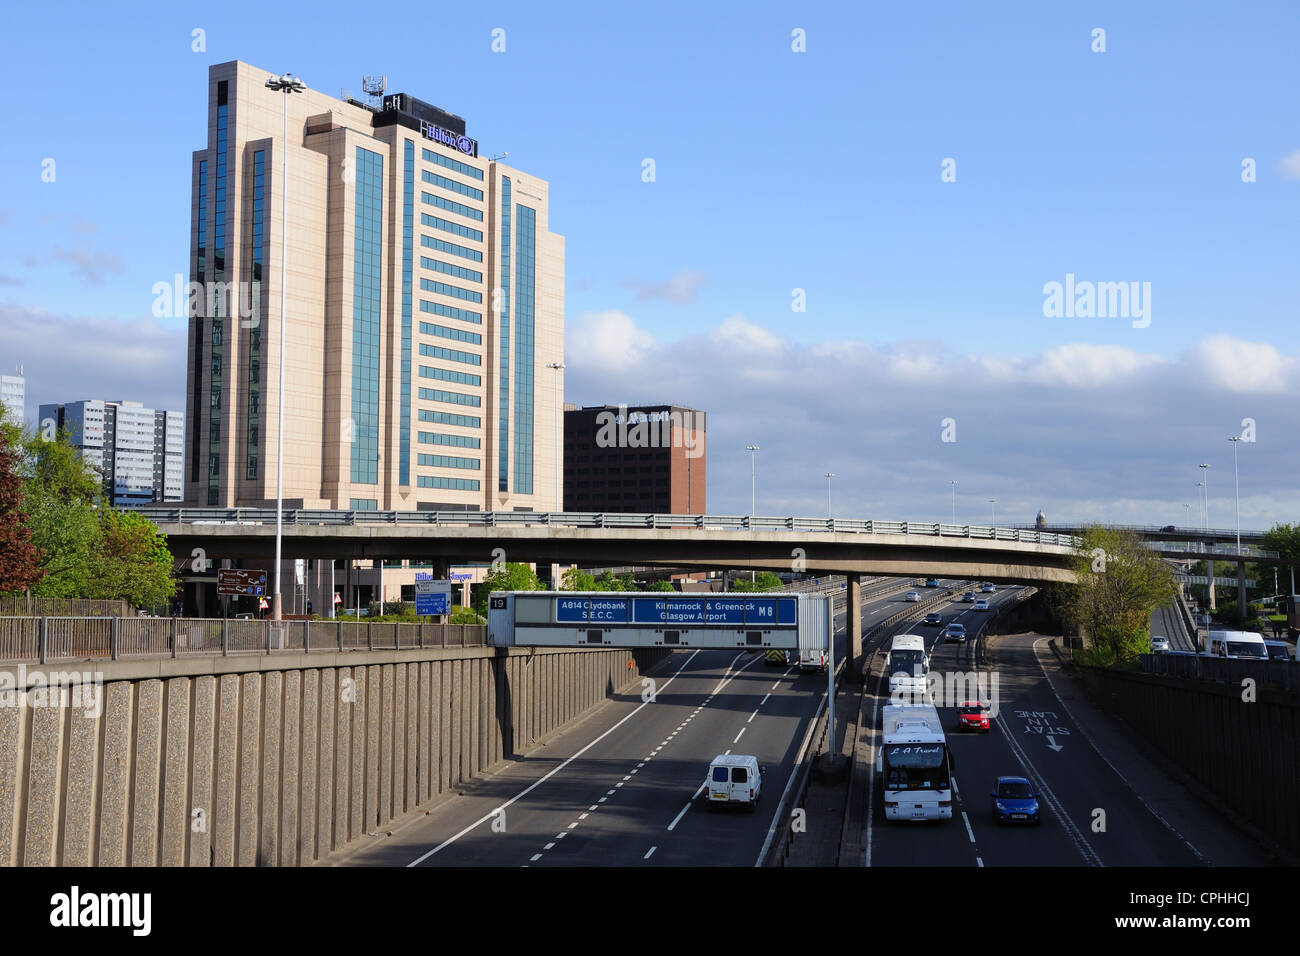 The M8 motorway running through the heart of Glasgow. The Hilton and Marriott hotels provide easy access for travelers. - Stock Image